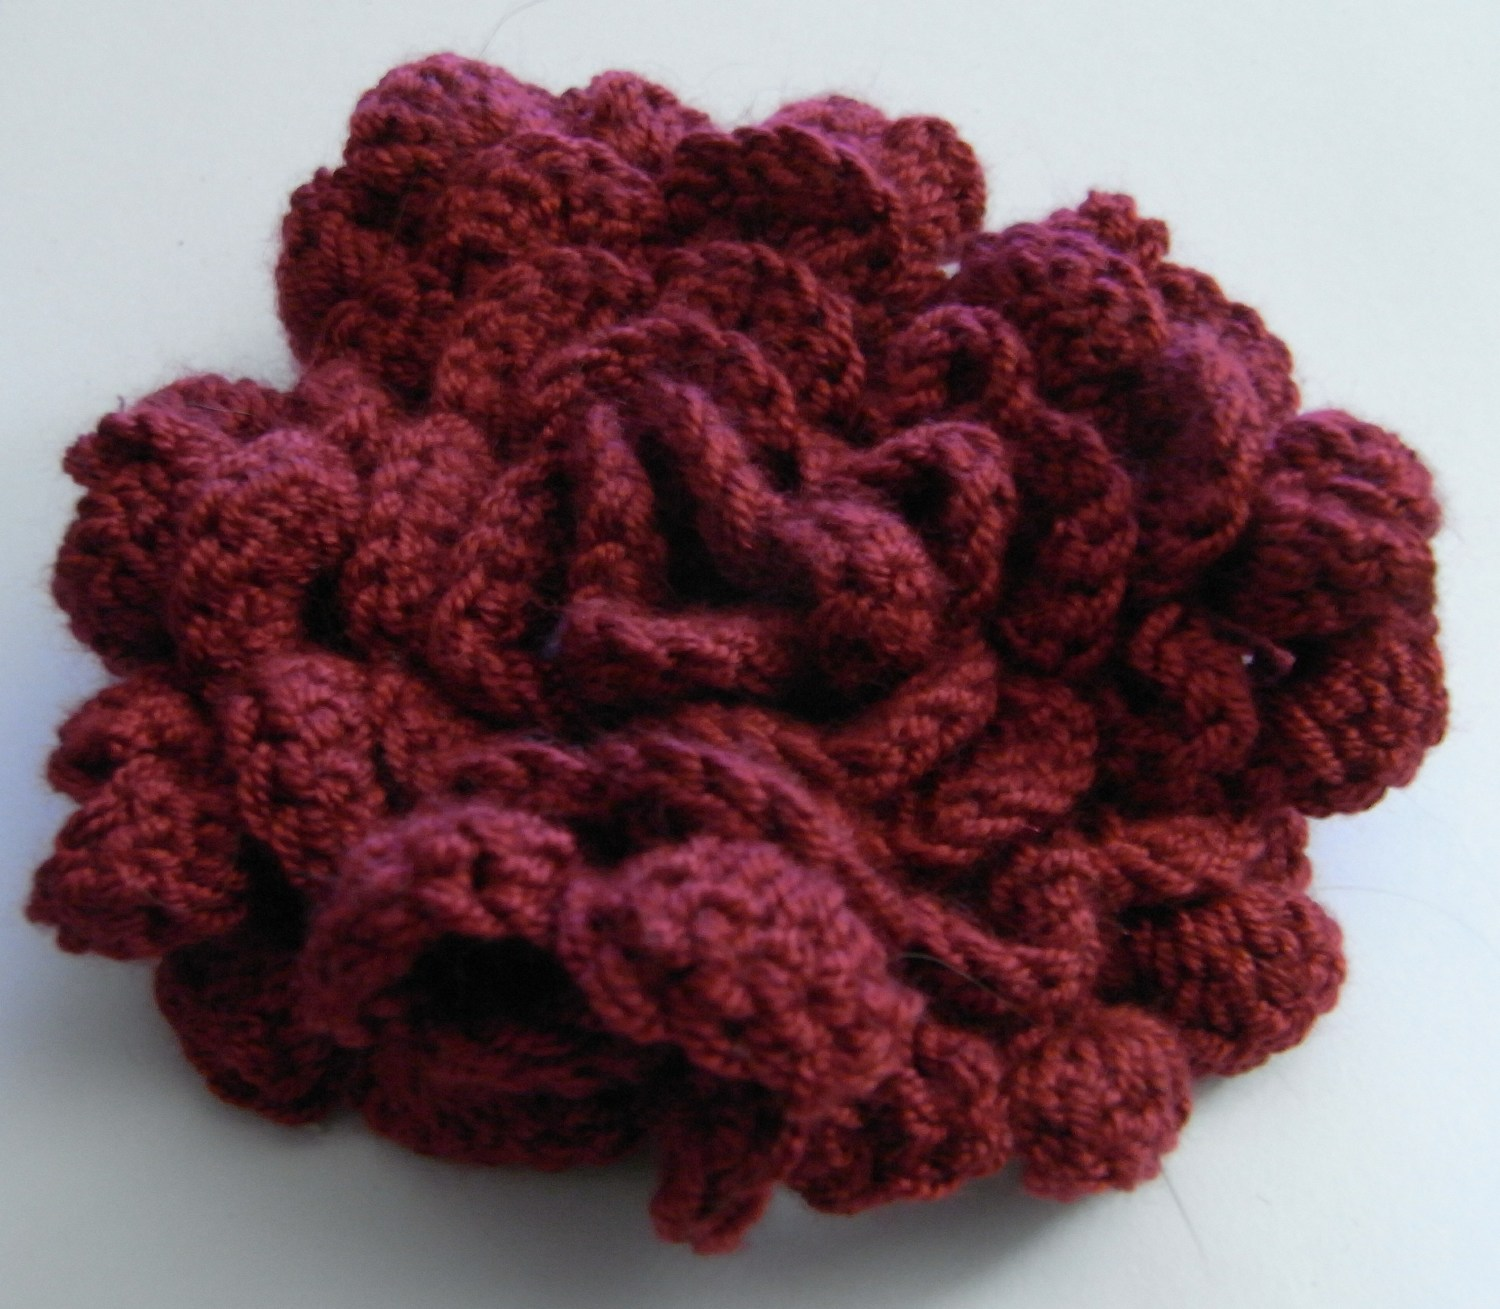 Crocheting Videos : CROCHETED 3D FLOWER PATTERNS - Crochet Club